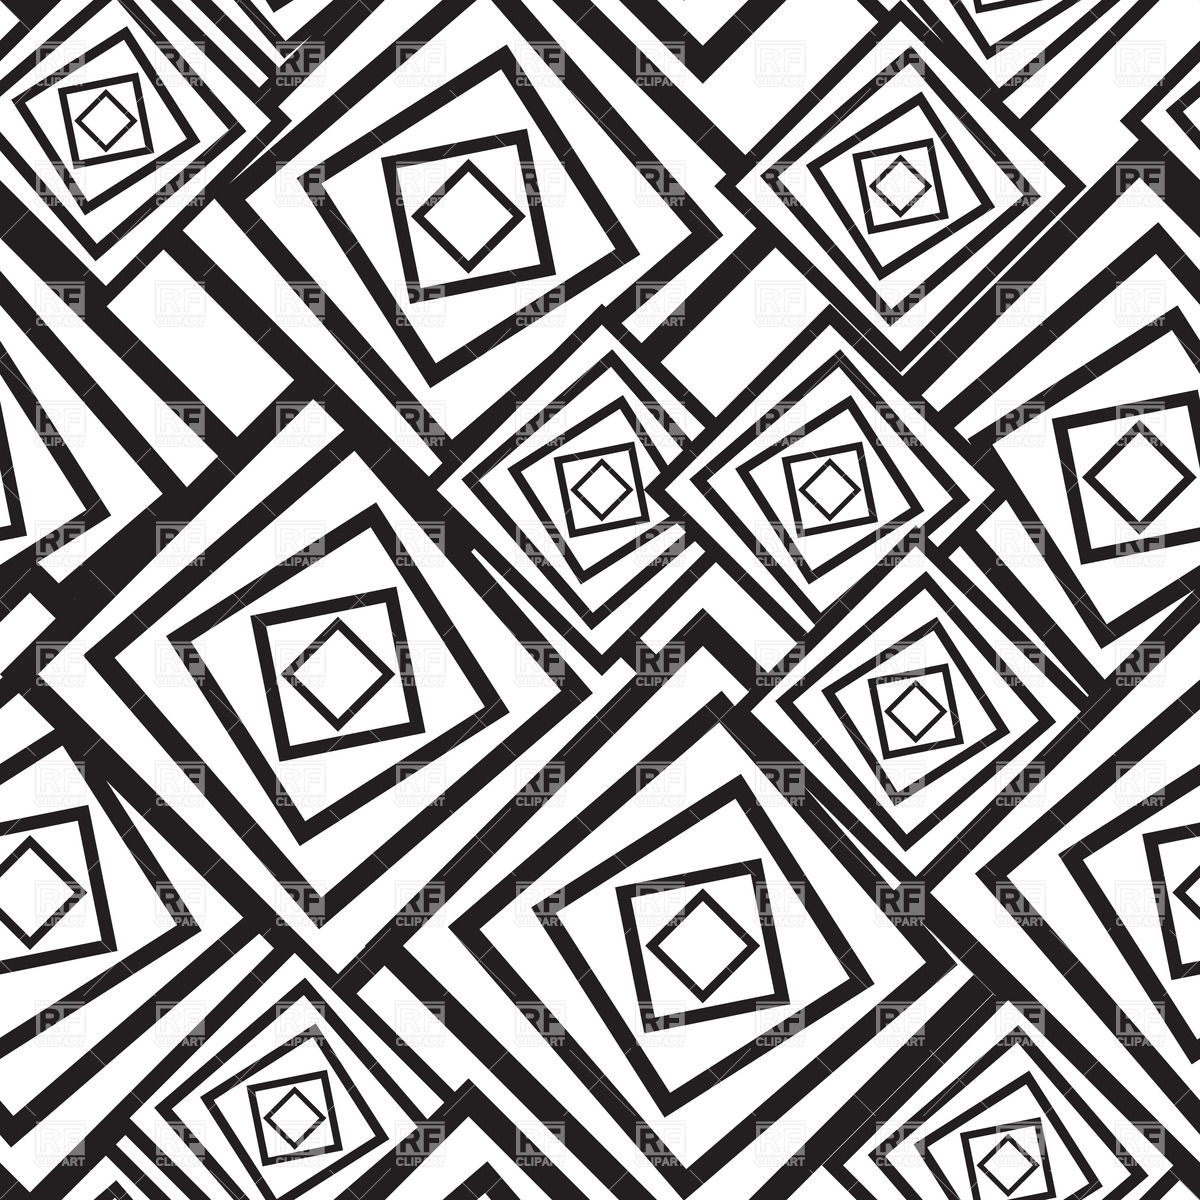 Black and white abstract pattern with squares Vector Image #33507.